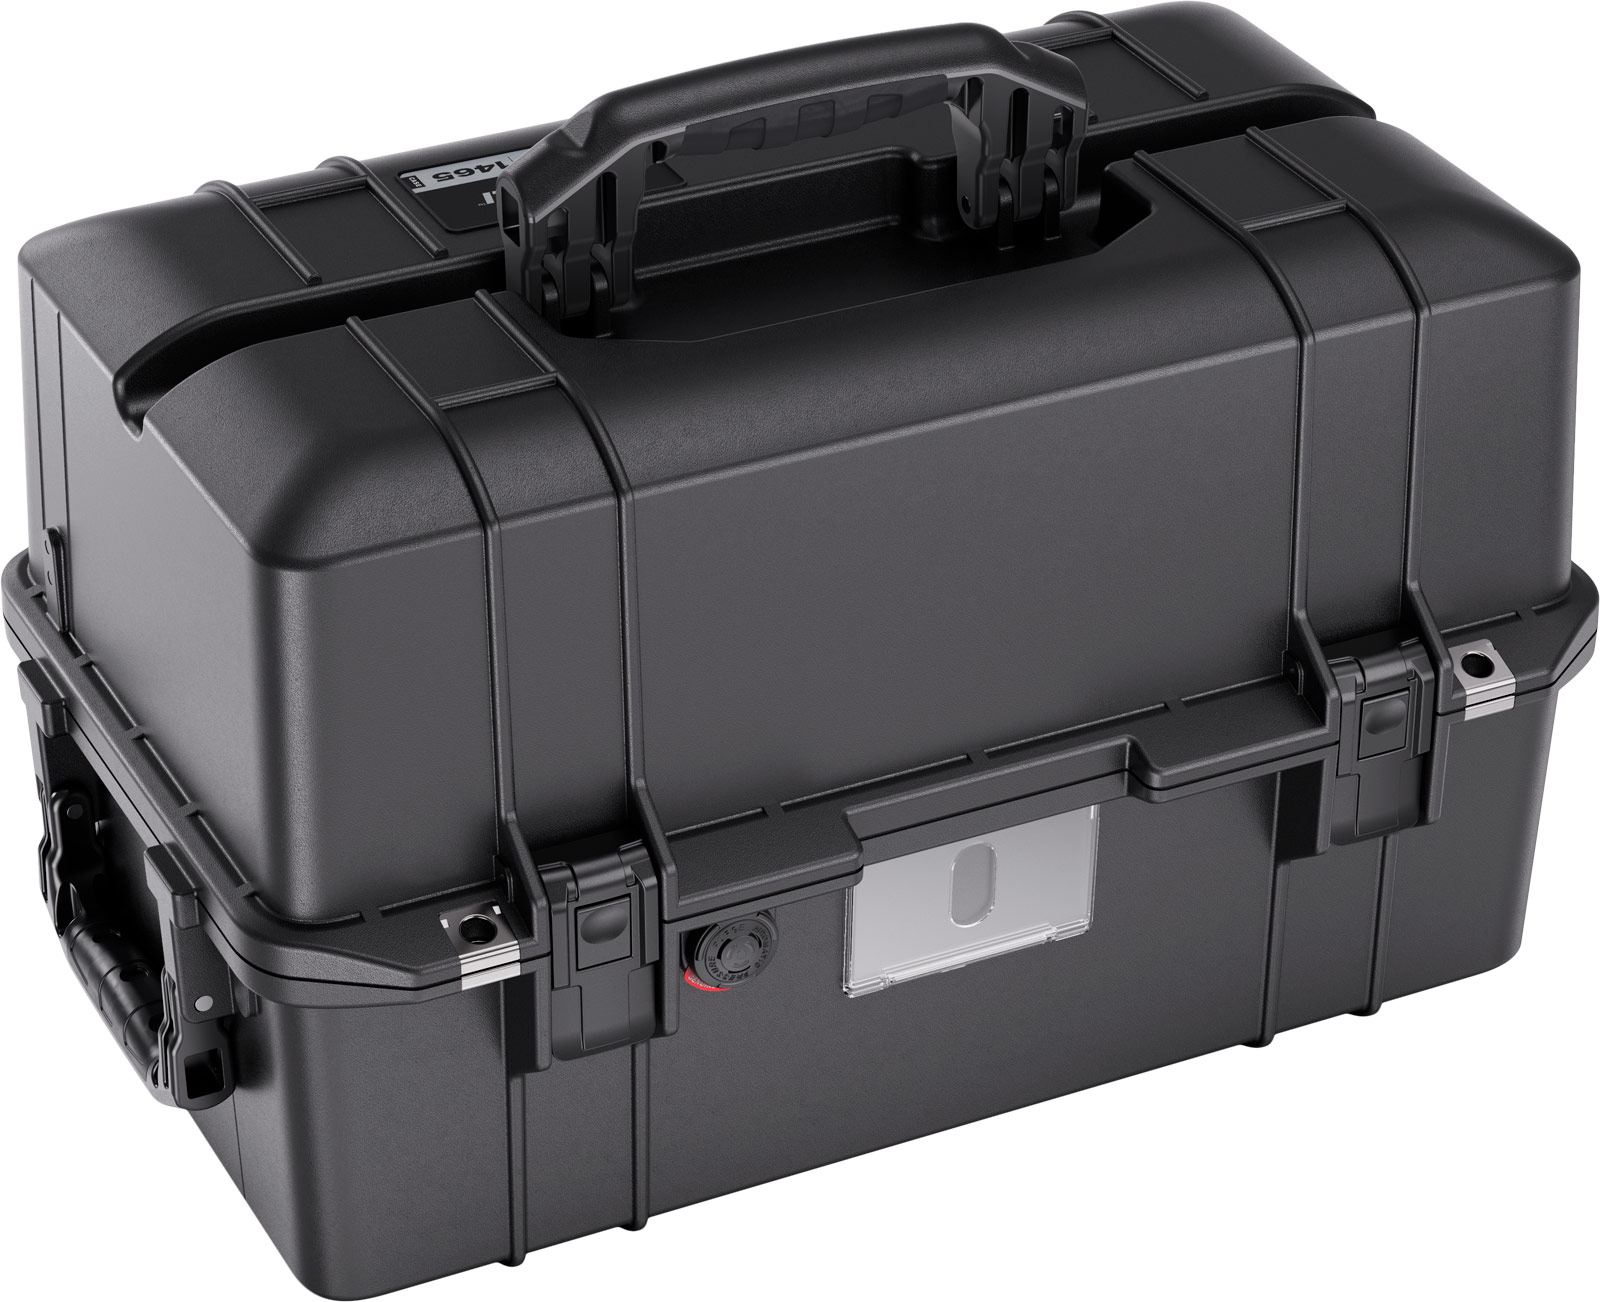 peli 1465 air case black protective cases